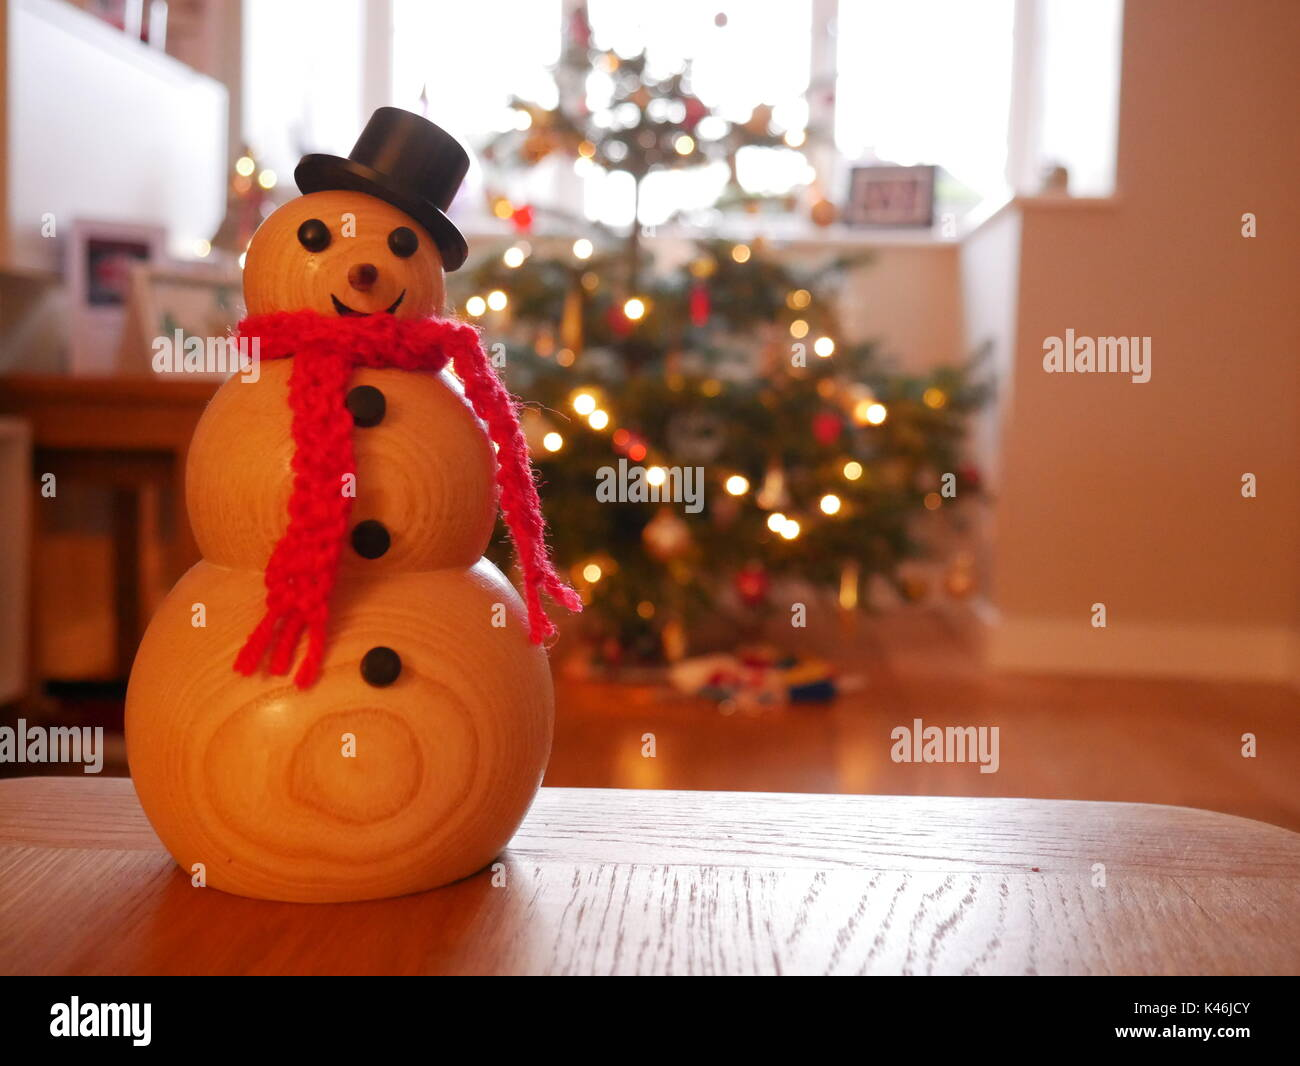 Handmade, woodturned snowman in front of a real christmas tree - Stock Image